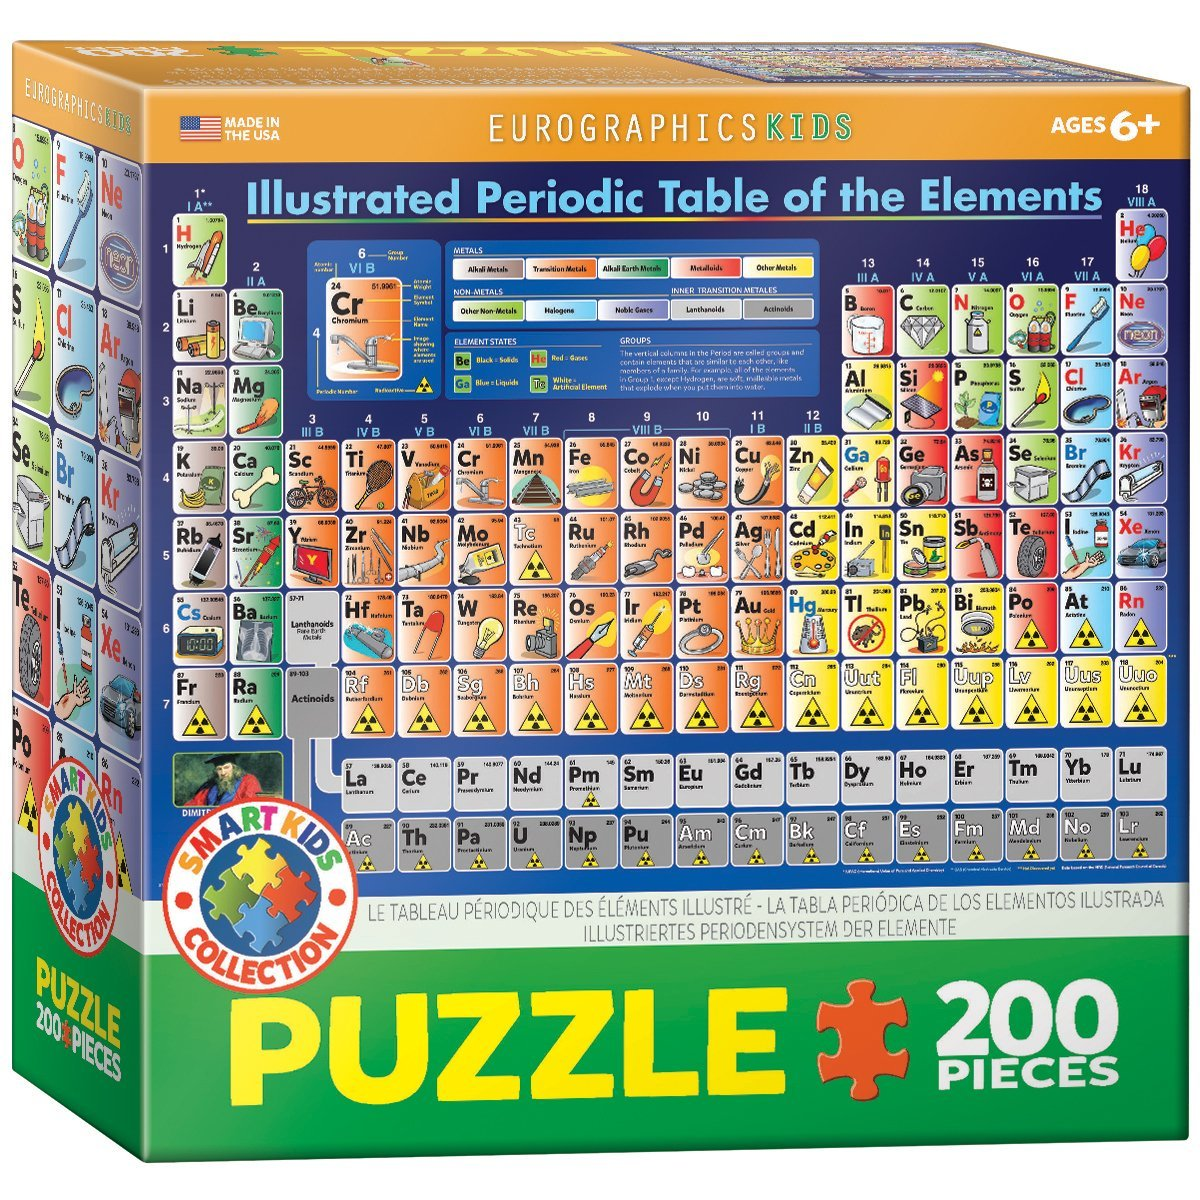 Puzzle Illustrated Periodic Table Of The Elements